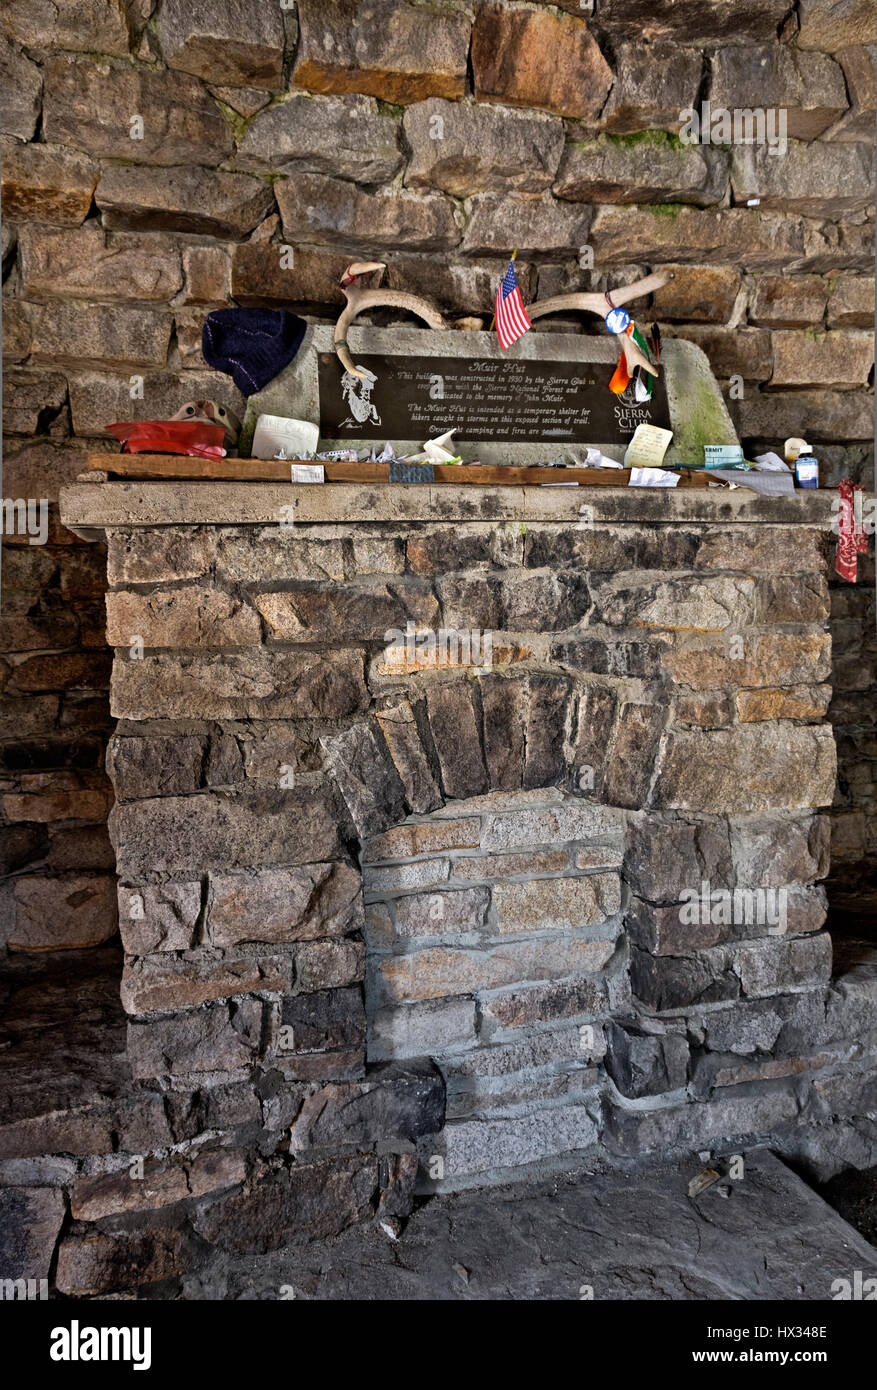 CA03125-00...CALIFORNIA - Interior of the stone shelter, mementos left on the mantle, at the summit of Muir Pass - Stock Image